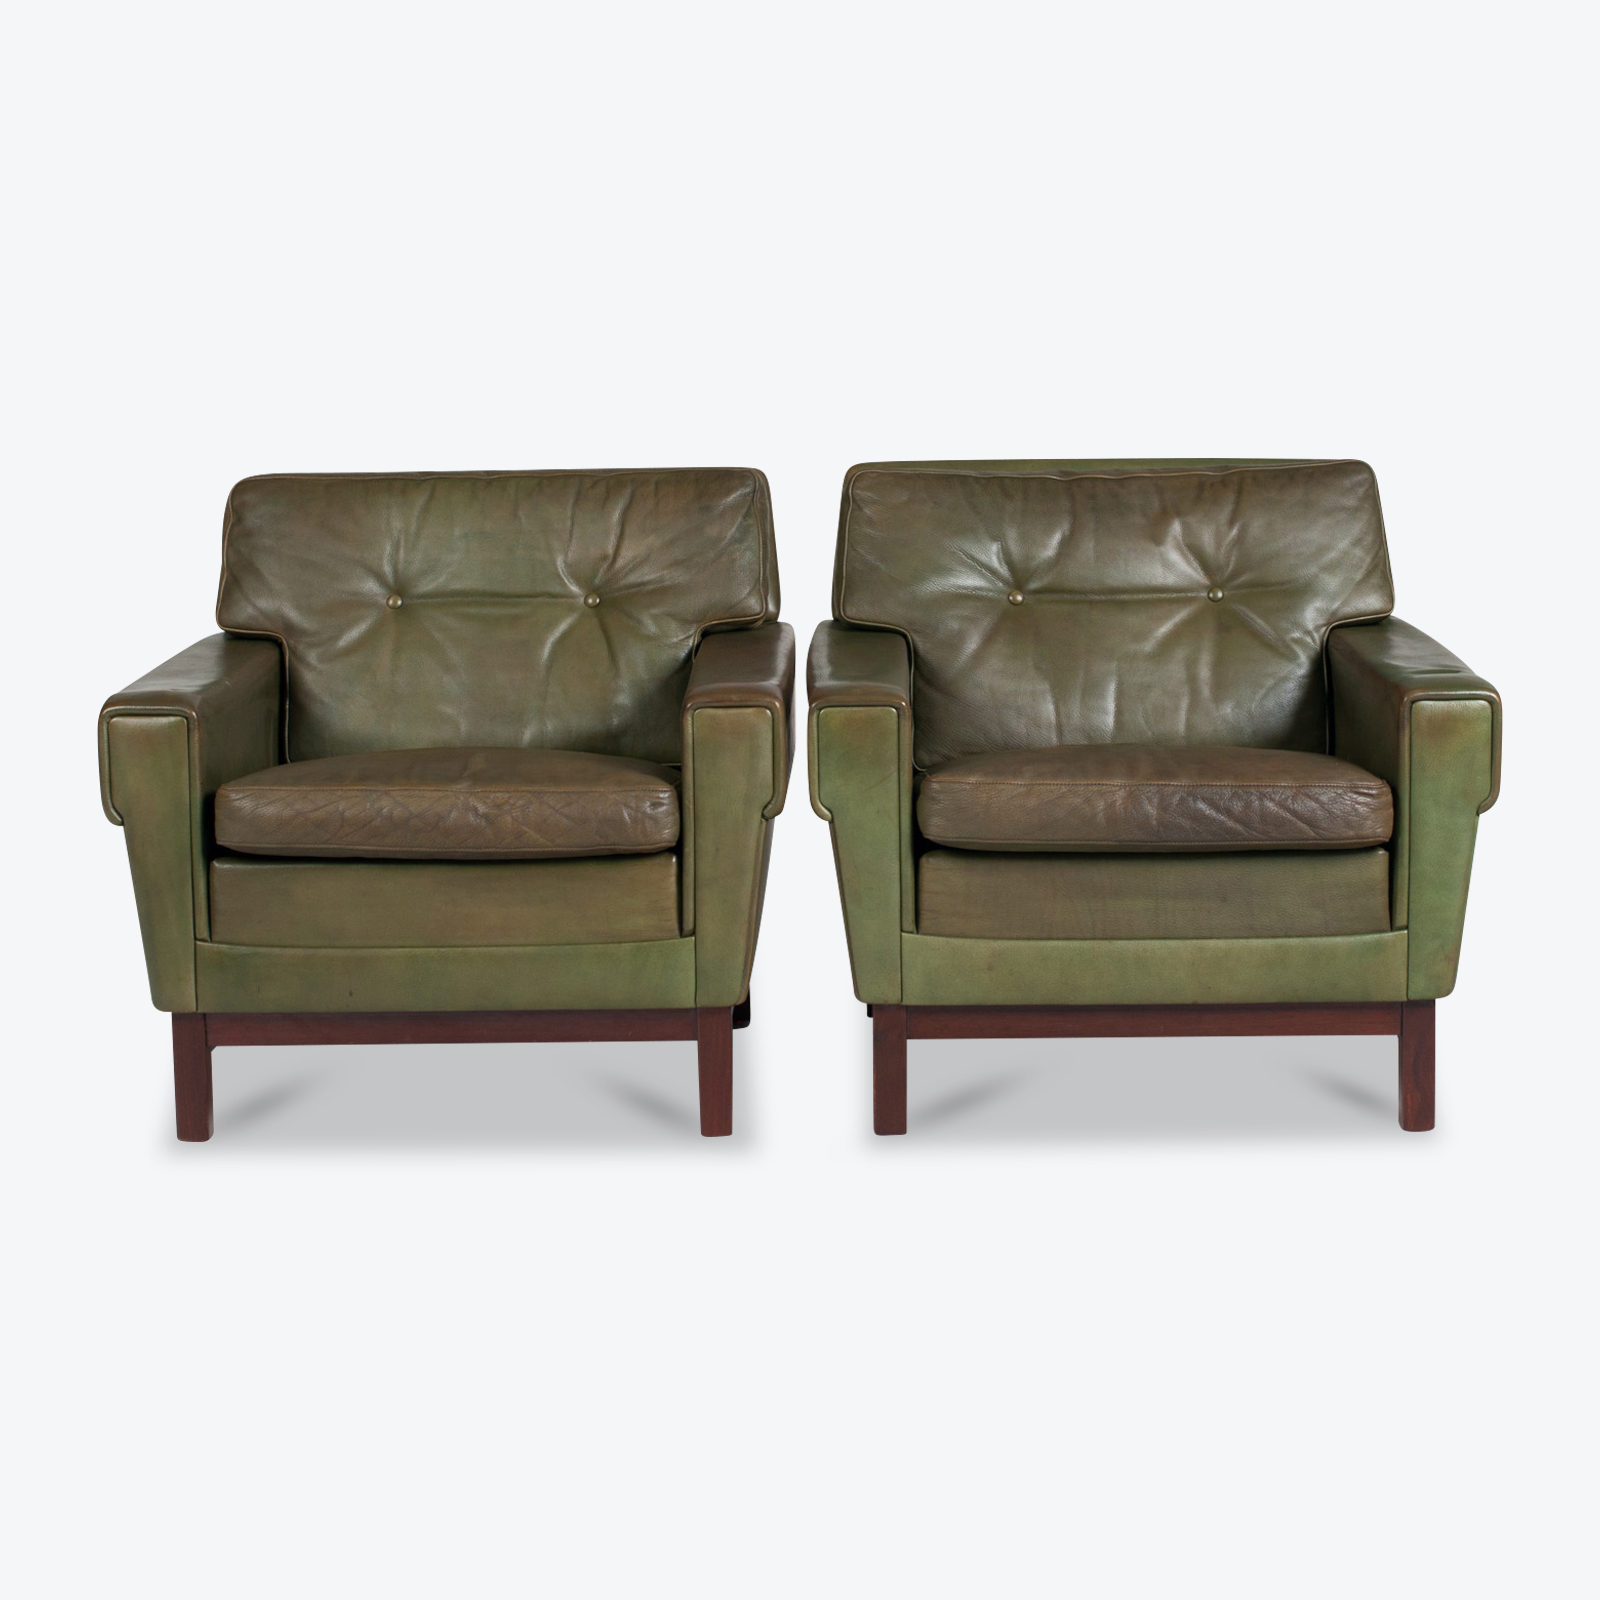 2 Armchairs In Olive Leather 1960s Denmark 02